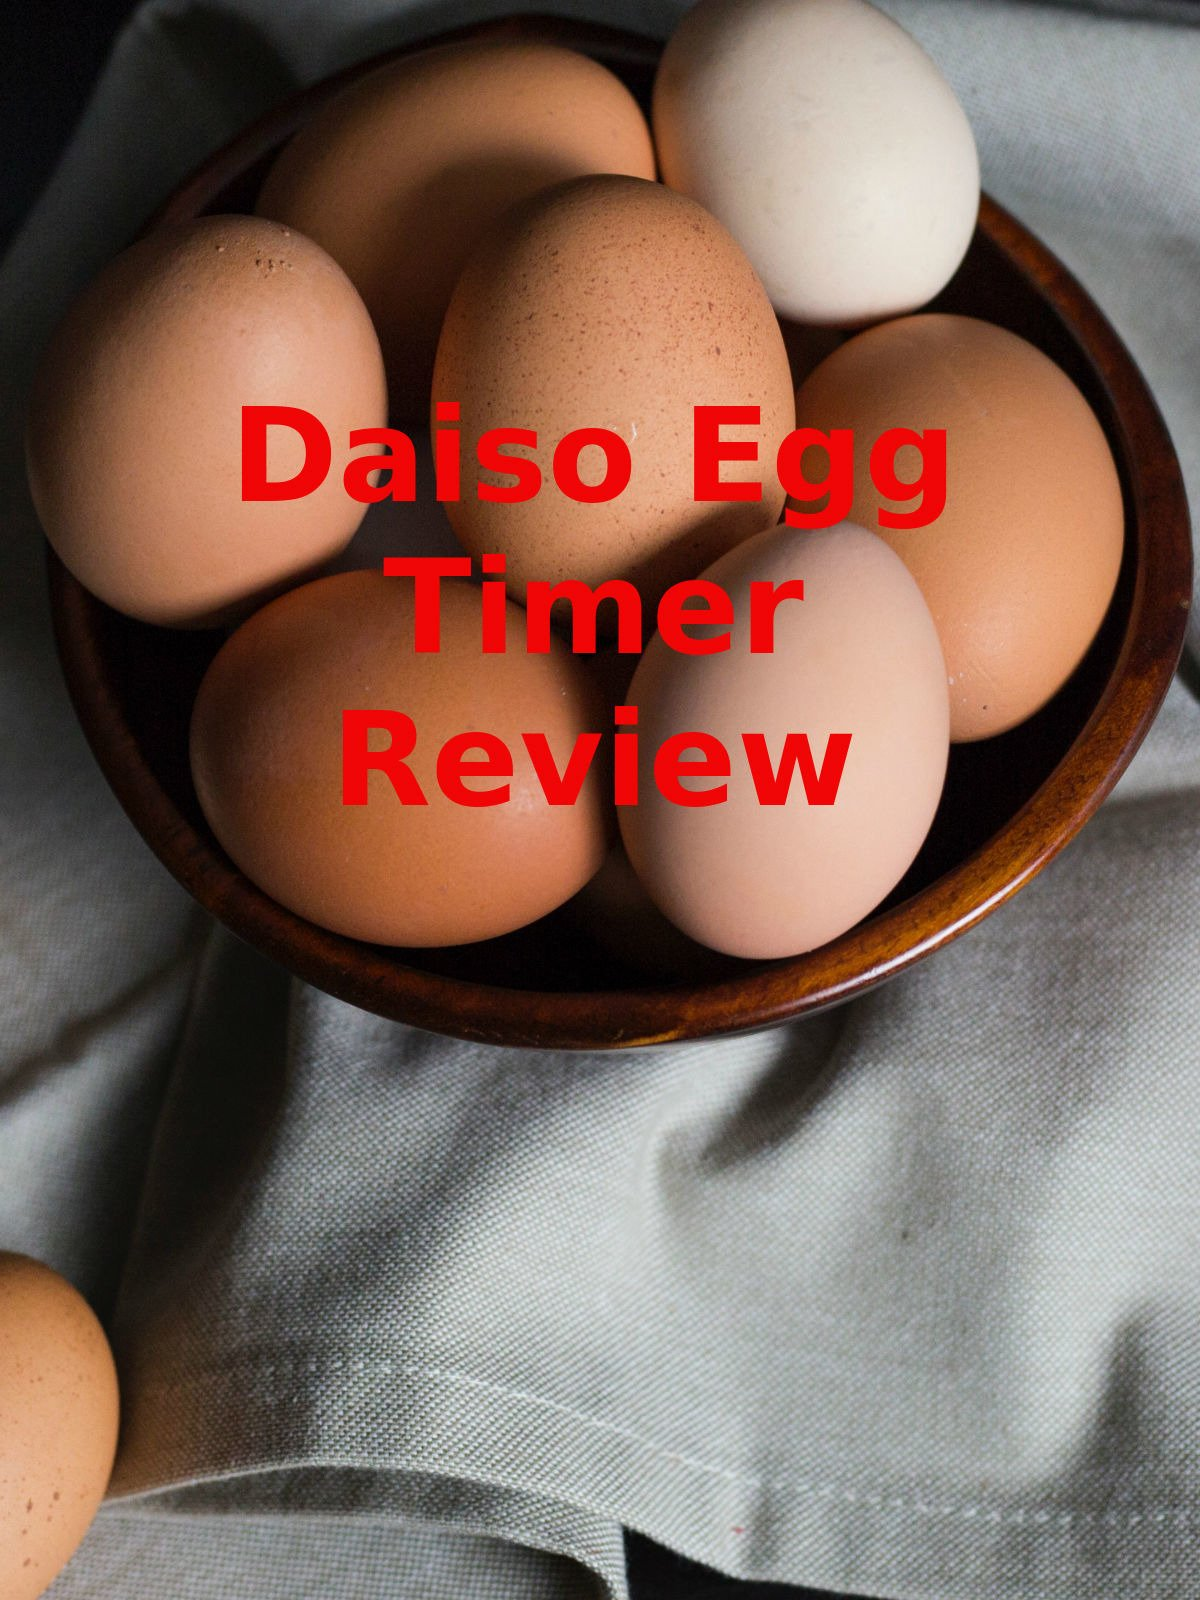 Review: Daiso Egg Timer Review